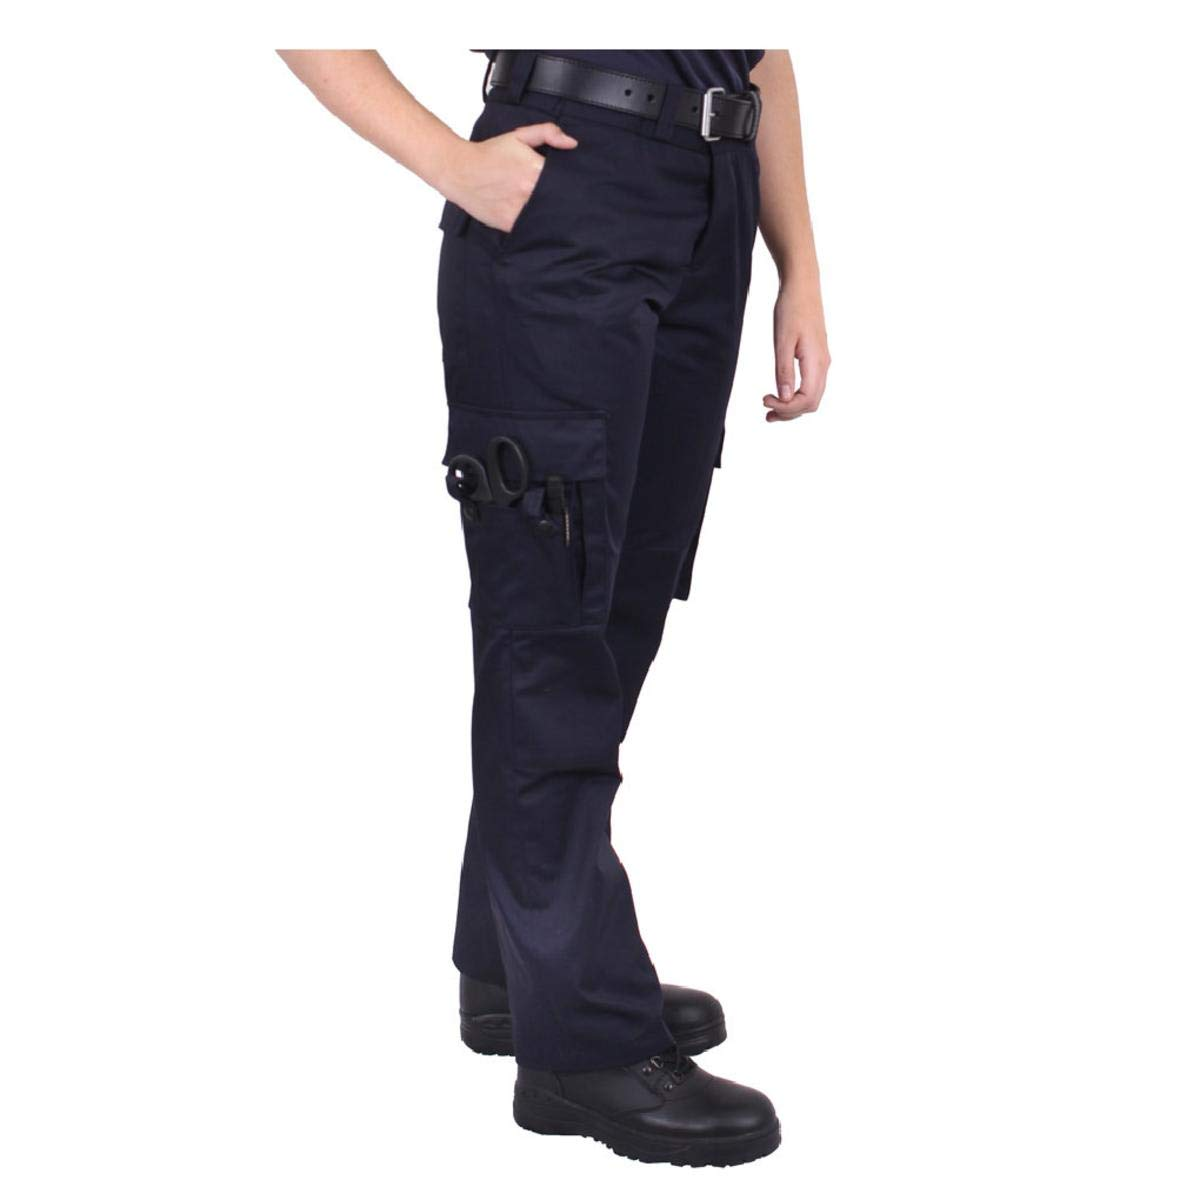 Rothco Women's EMT Cargo Pants, Tactical Pants, Midnight Navy Blue, 10